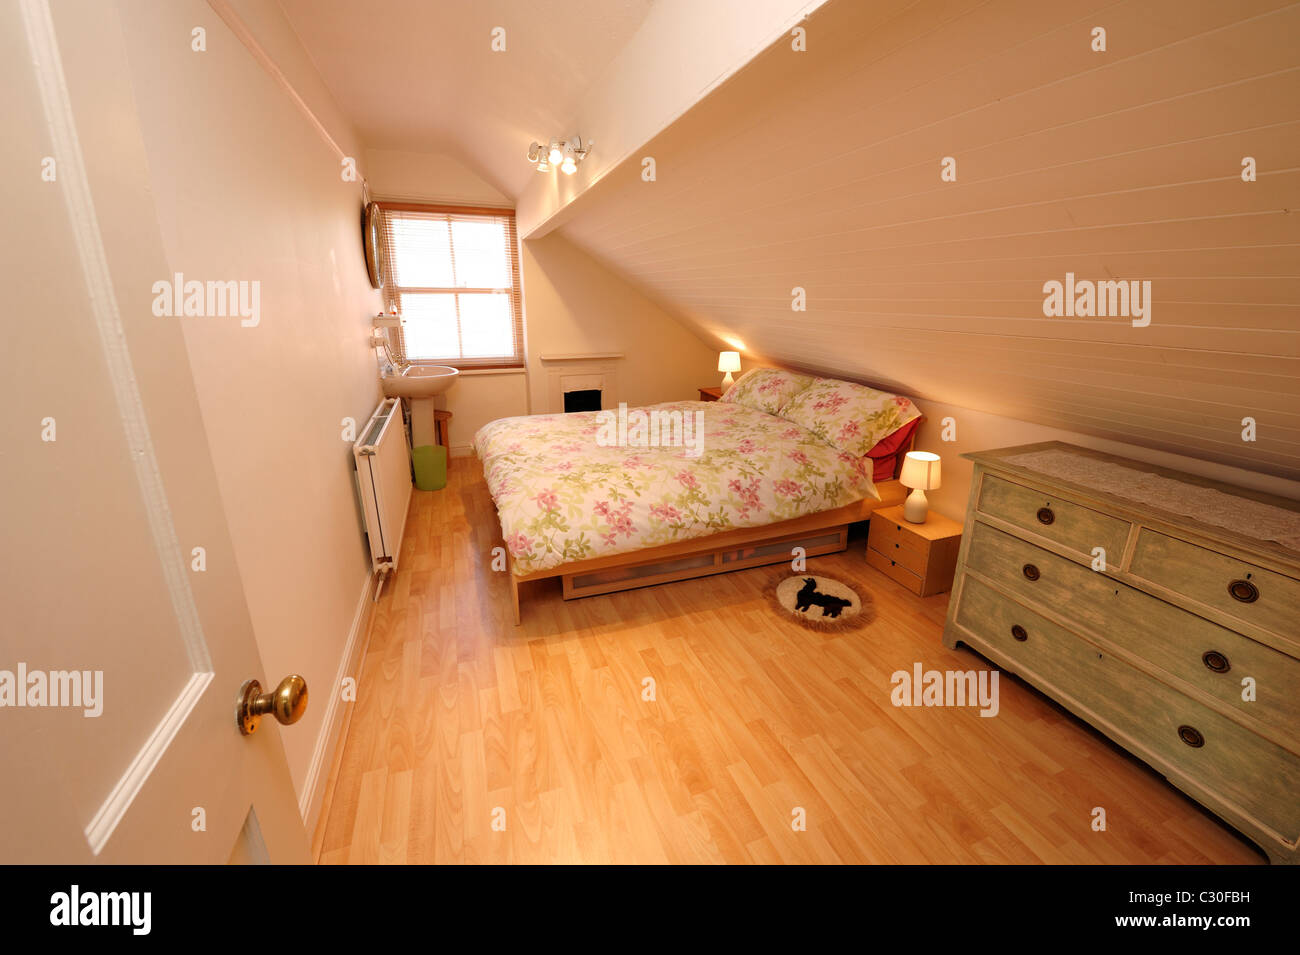 Loft Conversion Bedroom Modern Loft Conversion Bedroom Stock Photo Royalty Free Image